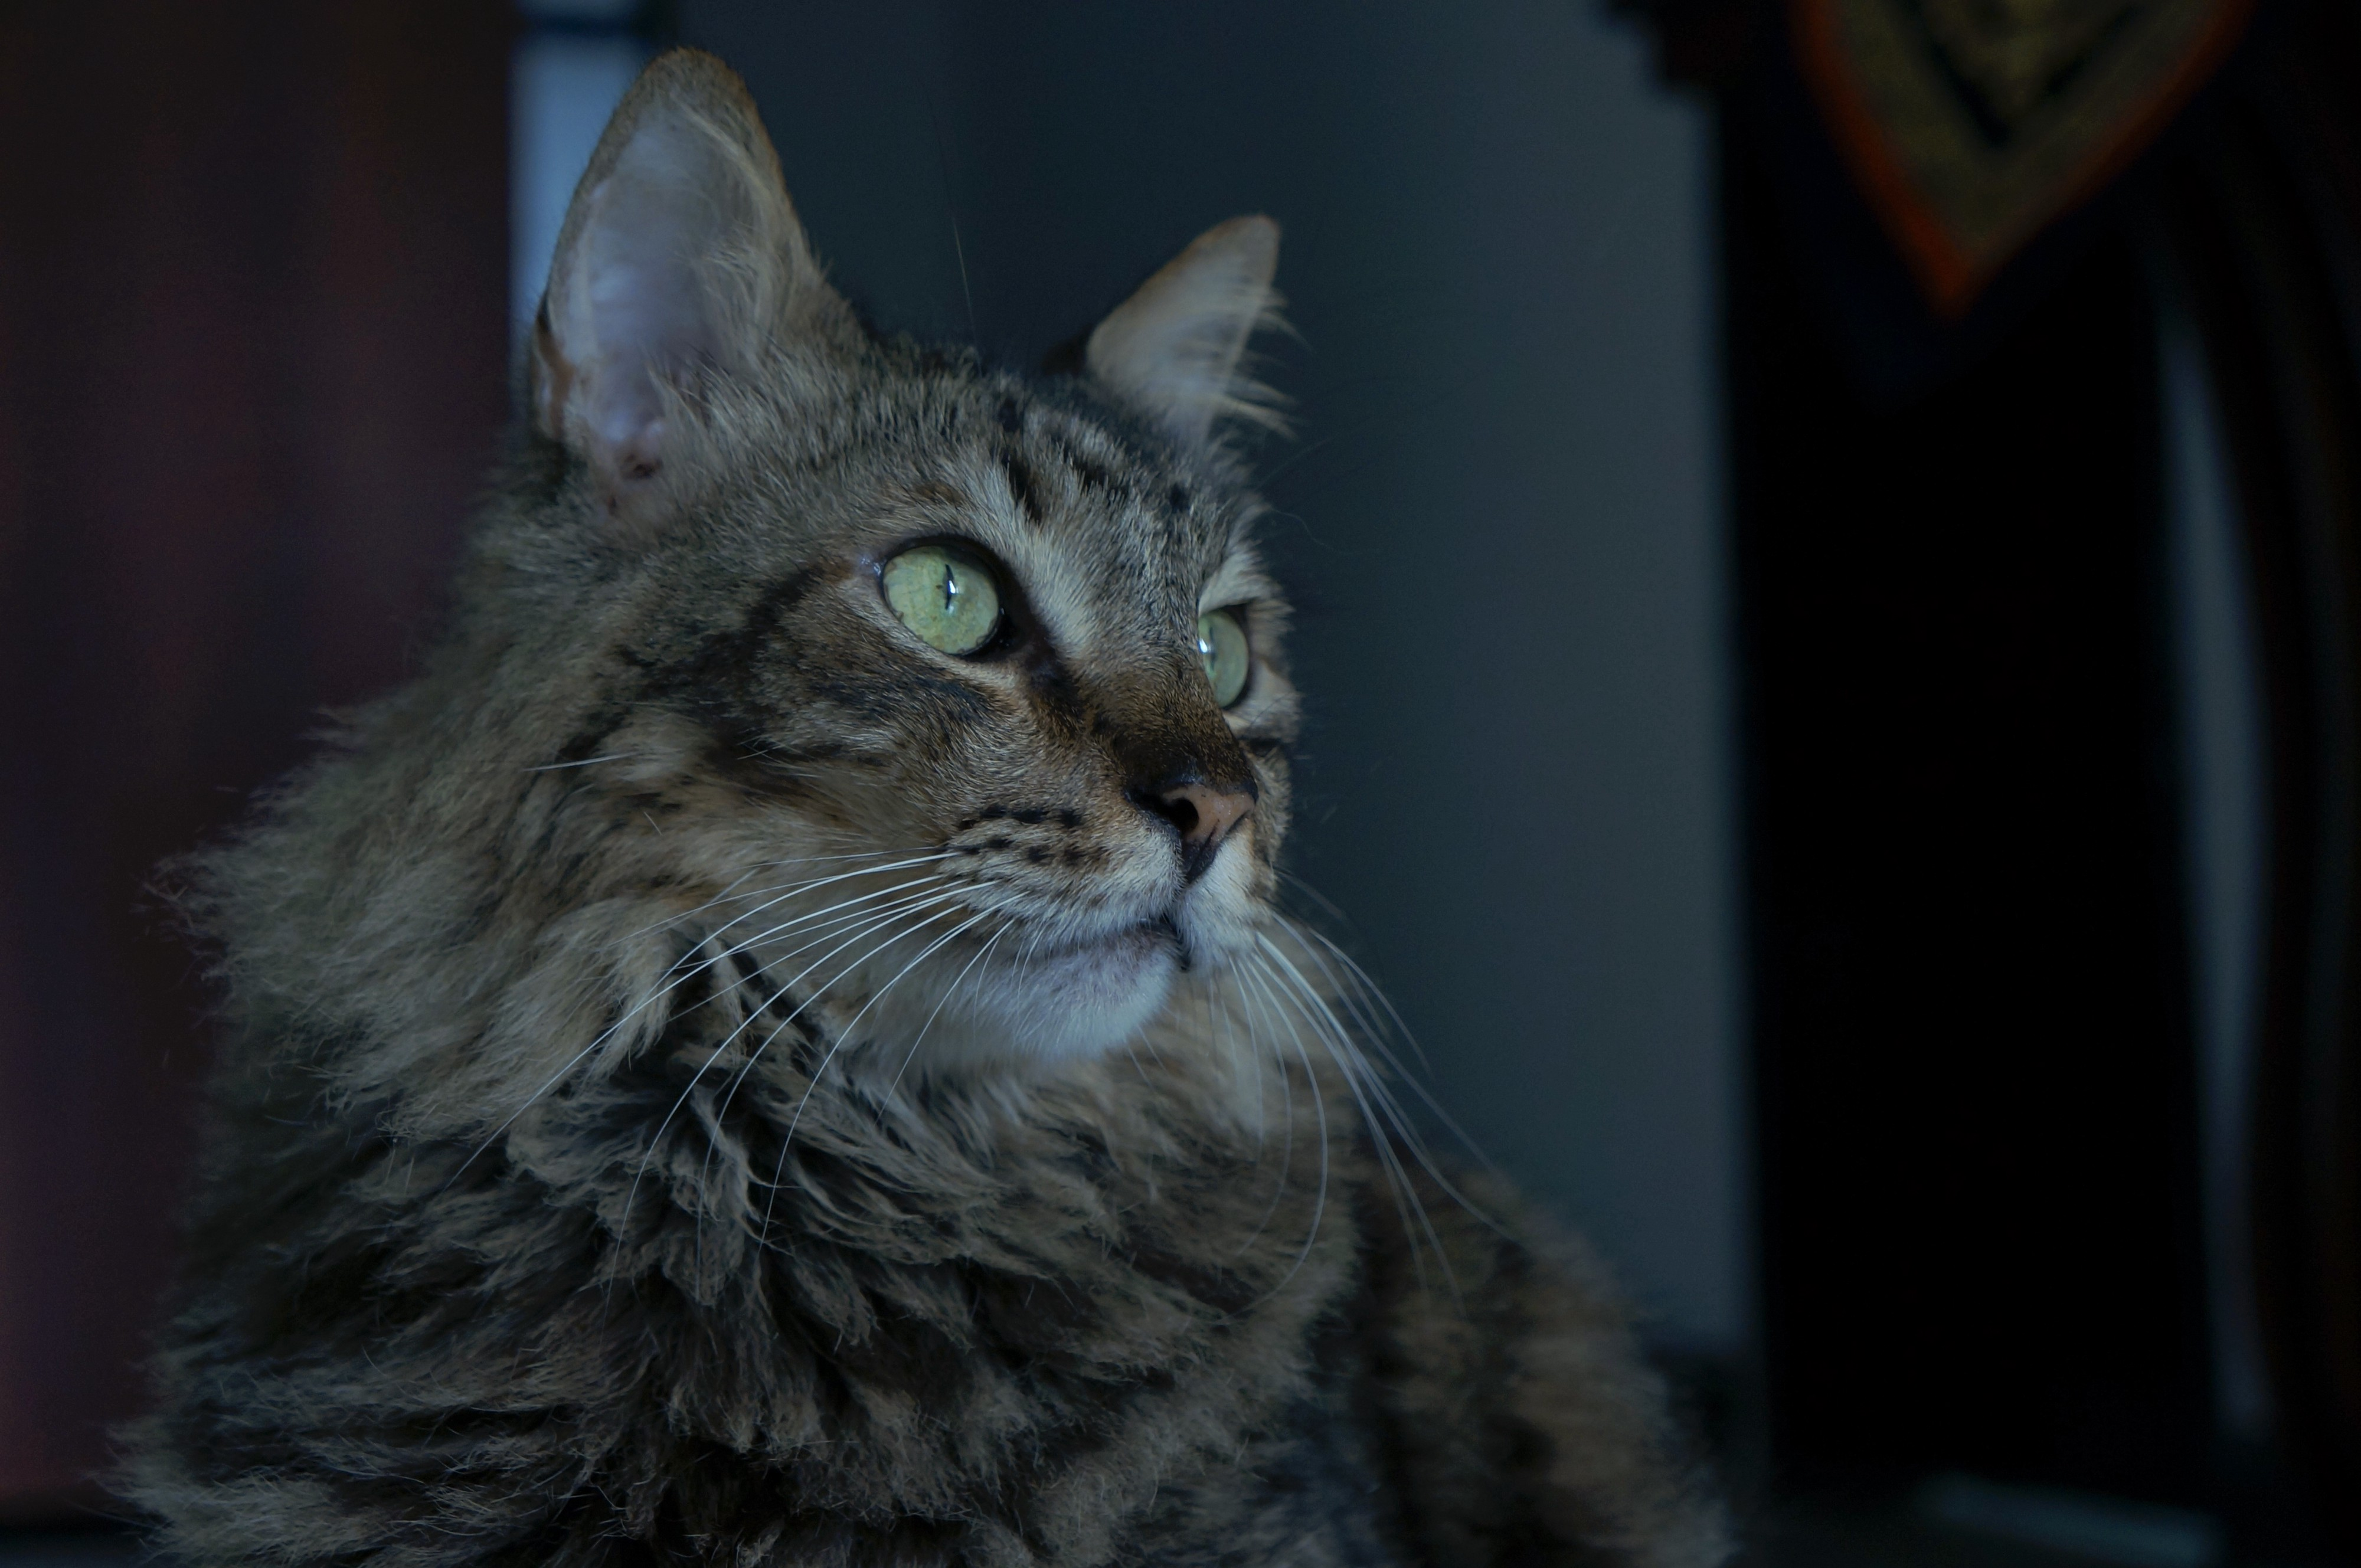 Main Coon Cat in 10 Things No One Told Me When I Adopted My Cat